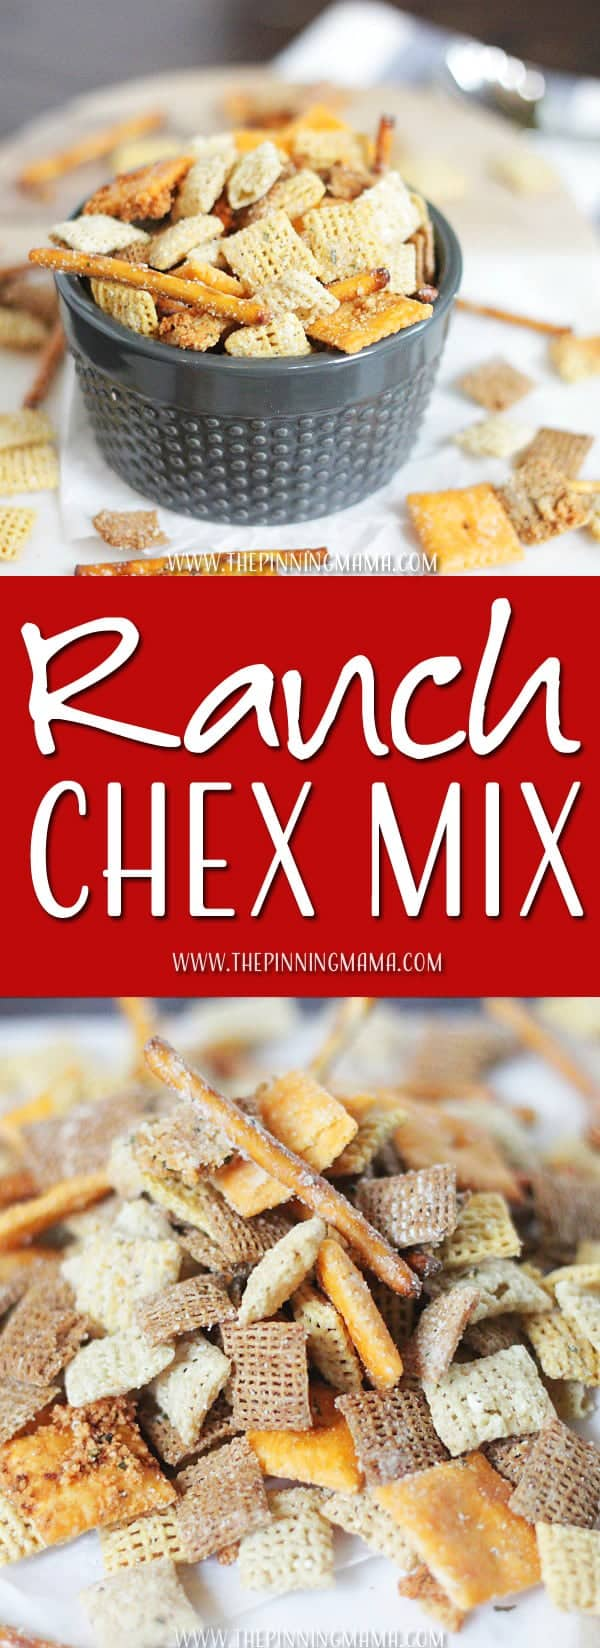 Cheesy Ranch Chex mix is our favorite snack! We LOVE ranch everything and make this recipe all the time!